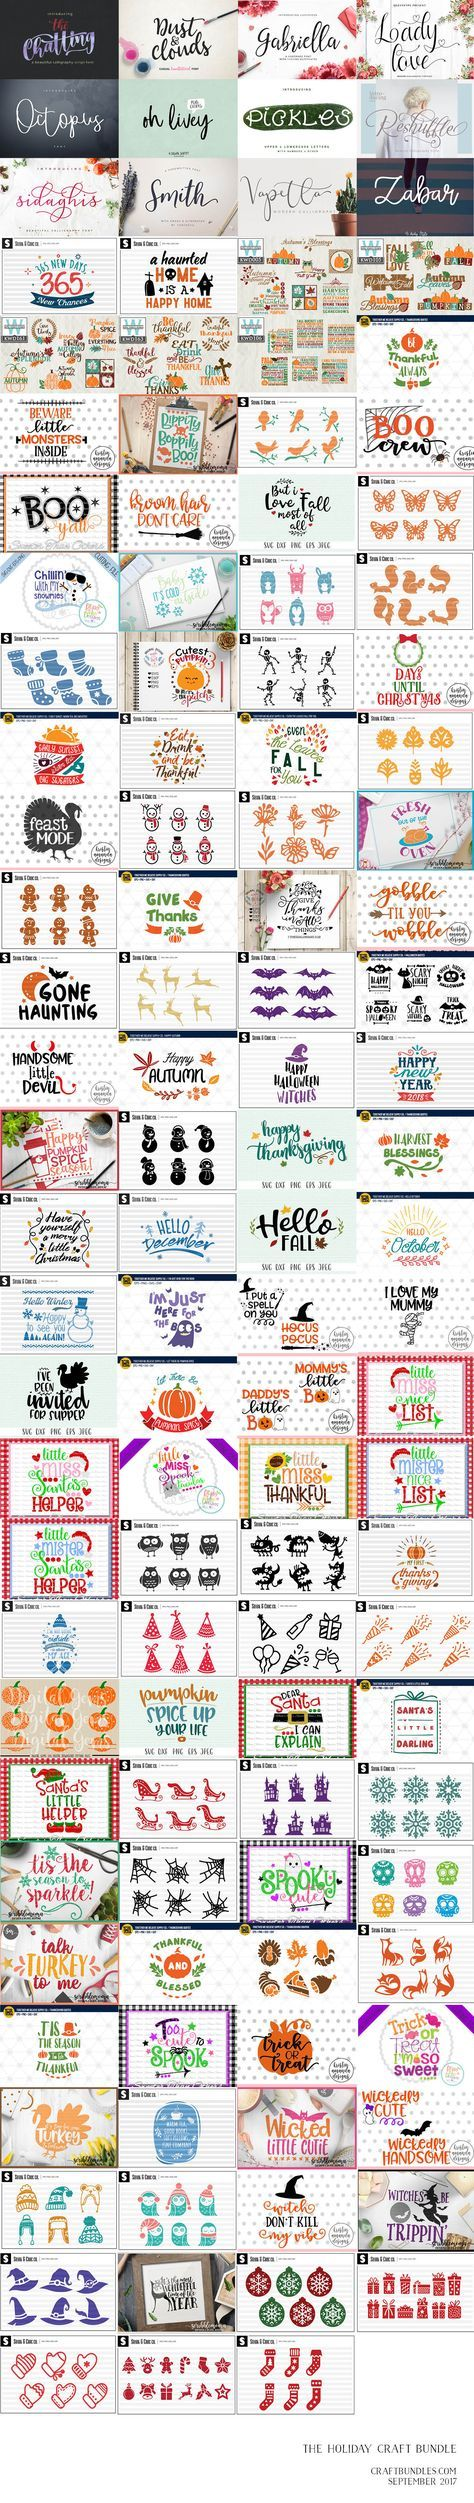 Free SVG cut files: The HUGE Holiday Craft Bundle is going and not coming back!! Jammed packed with over 12 different fonts and over 100 different craft products this craft bundle gives you an unlimited amount of projects you could create just in time for the holidays! • 12 fonts • 100 different craft products in...Read More »